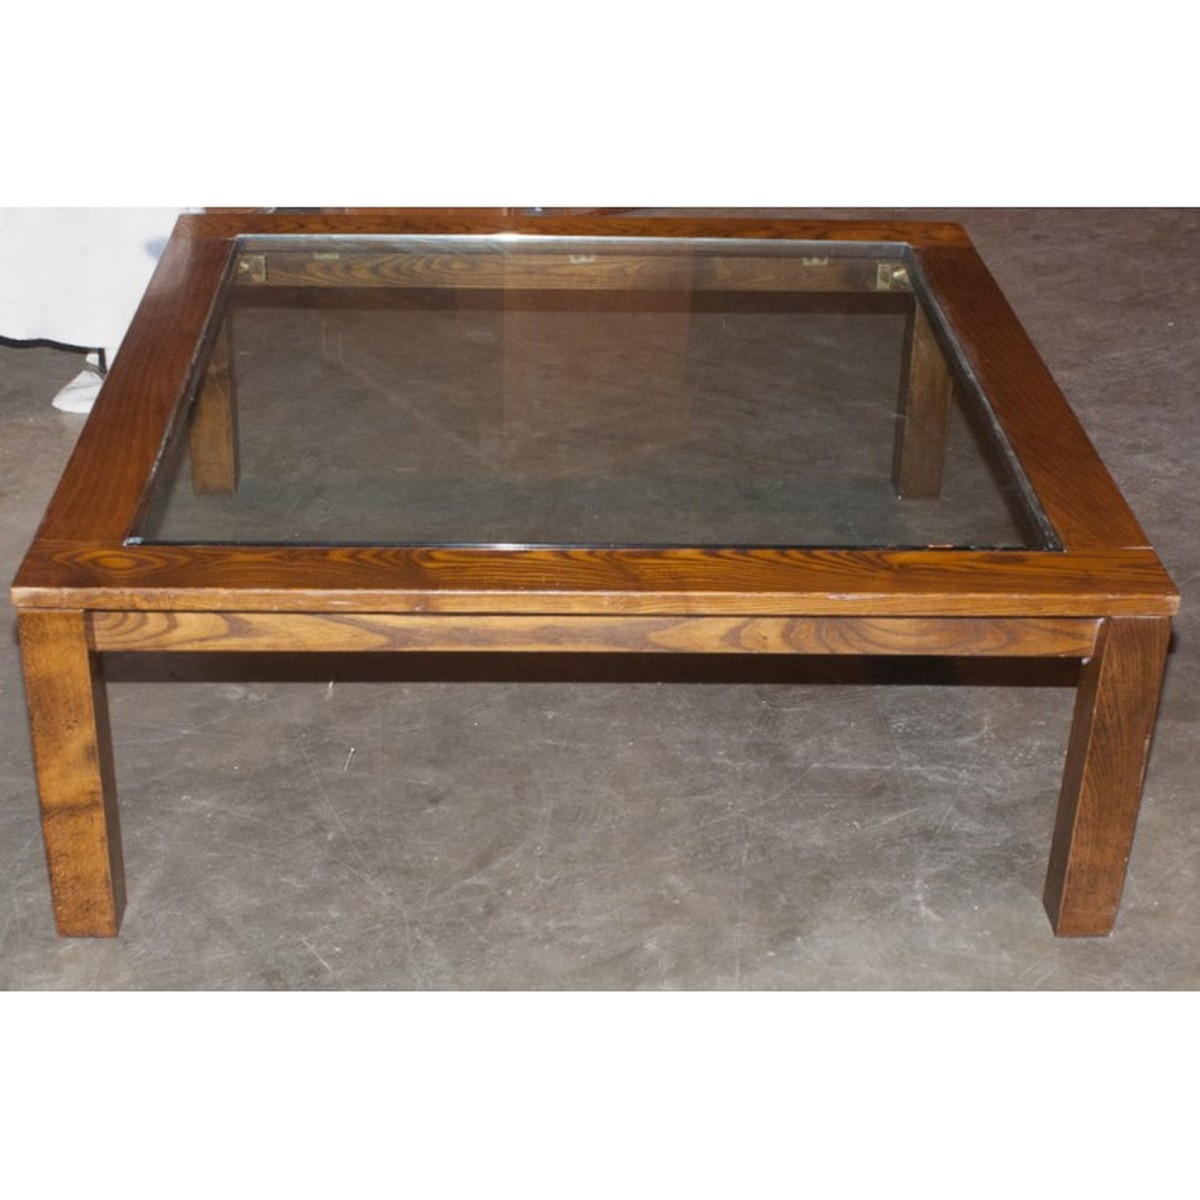 Square Glass Top End Table - Large square glass top coffee table large square glass top coffee table for sale